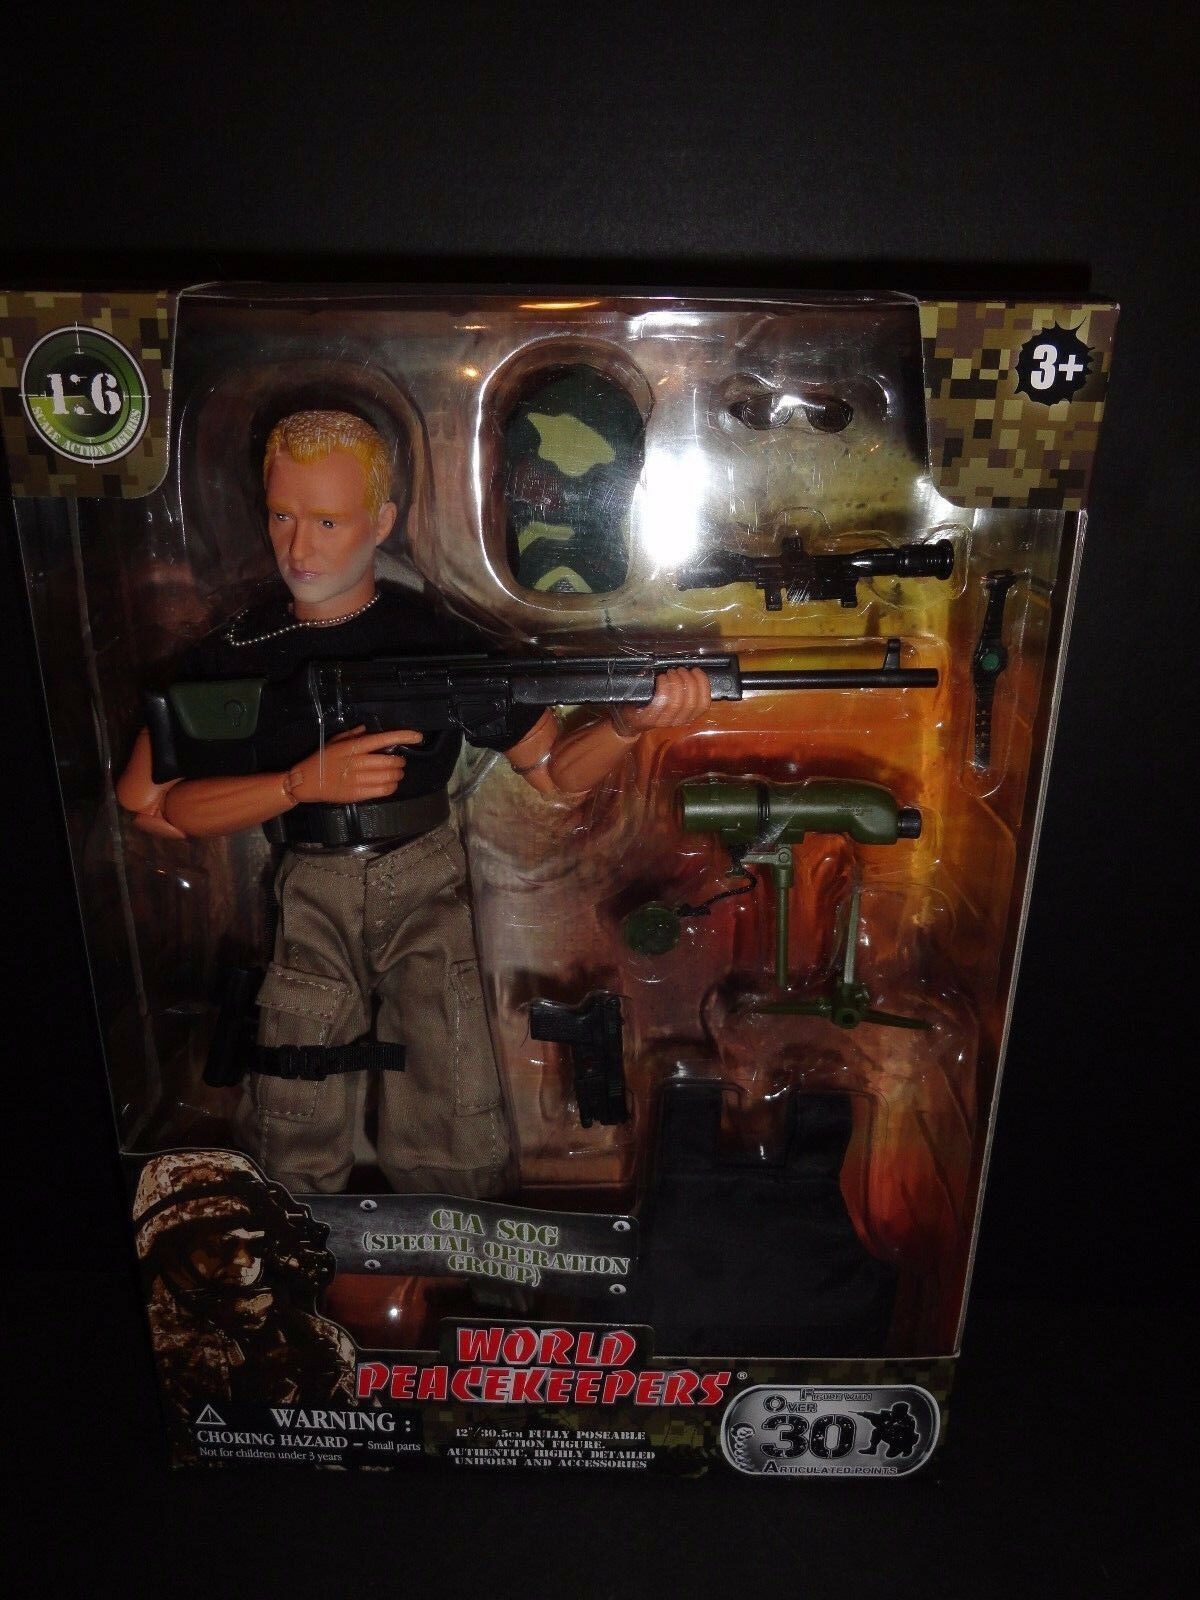 WORLD PEACEKEEPERS CIA SOG SPECIAL OPERATION  12  MILITARY ACTION FIGURE   NEW